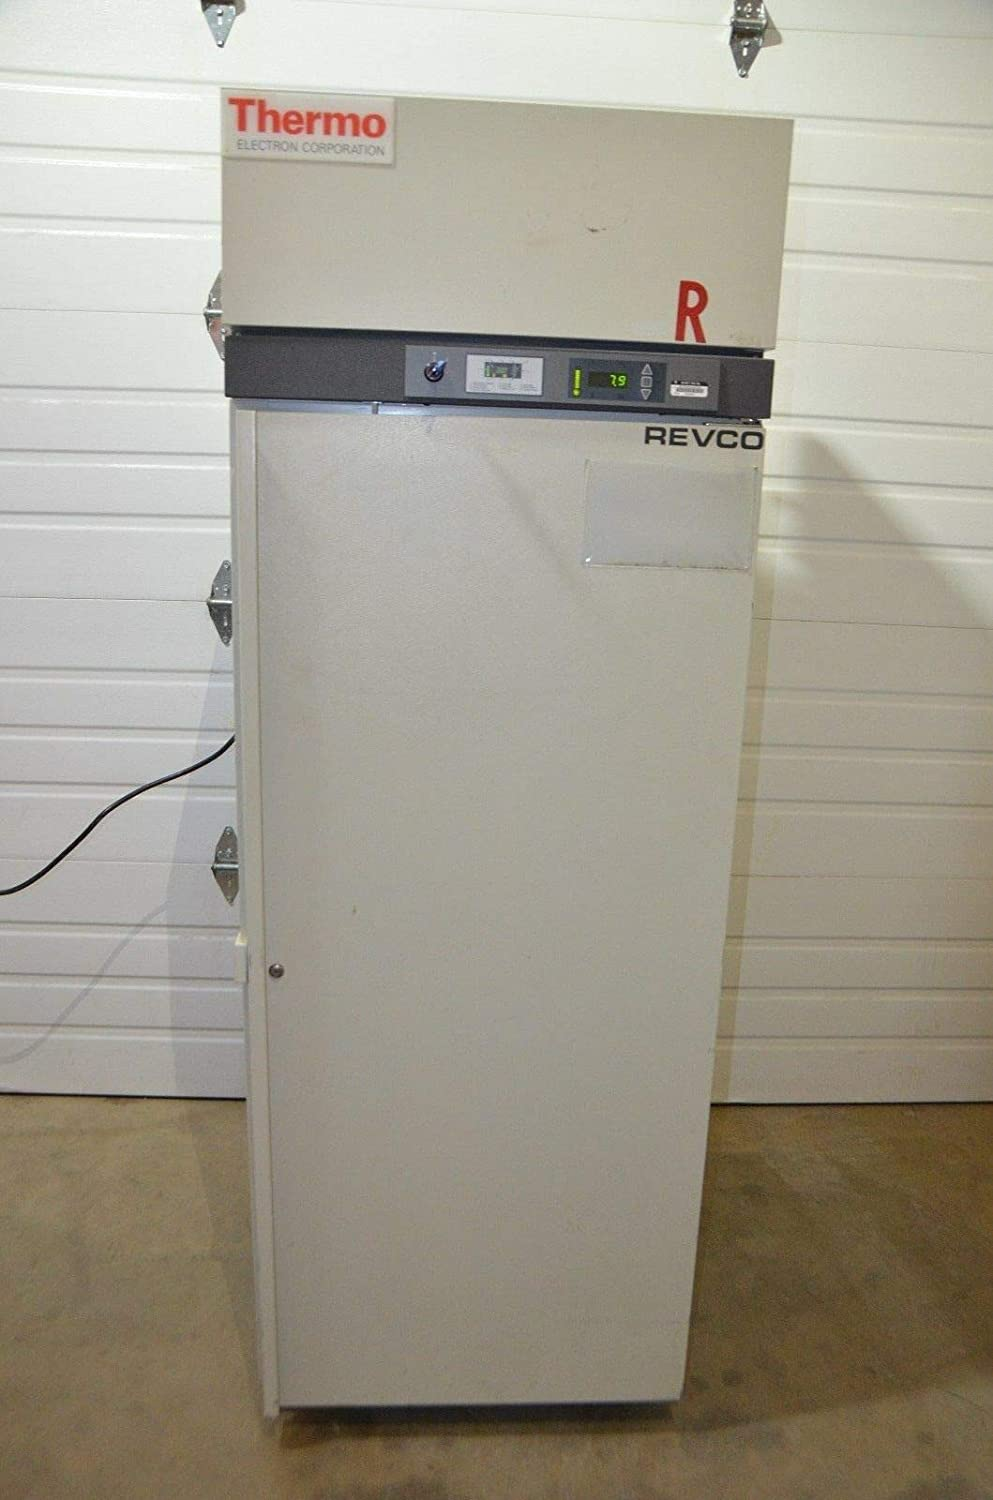 Thermo Electron Revco ULT2330A 19 Upright Lab FreezerFor Parts/Repair